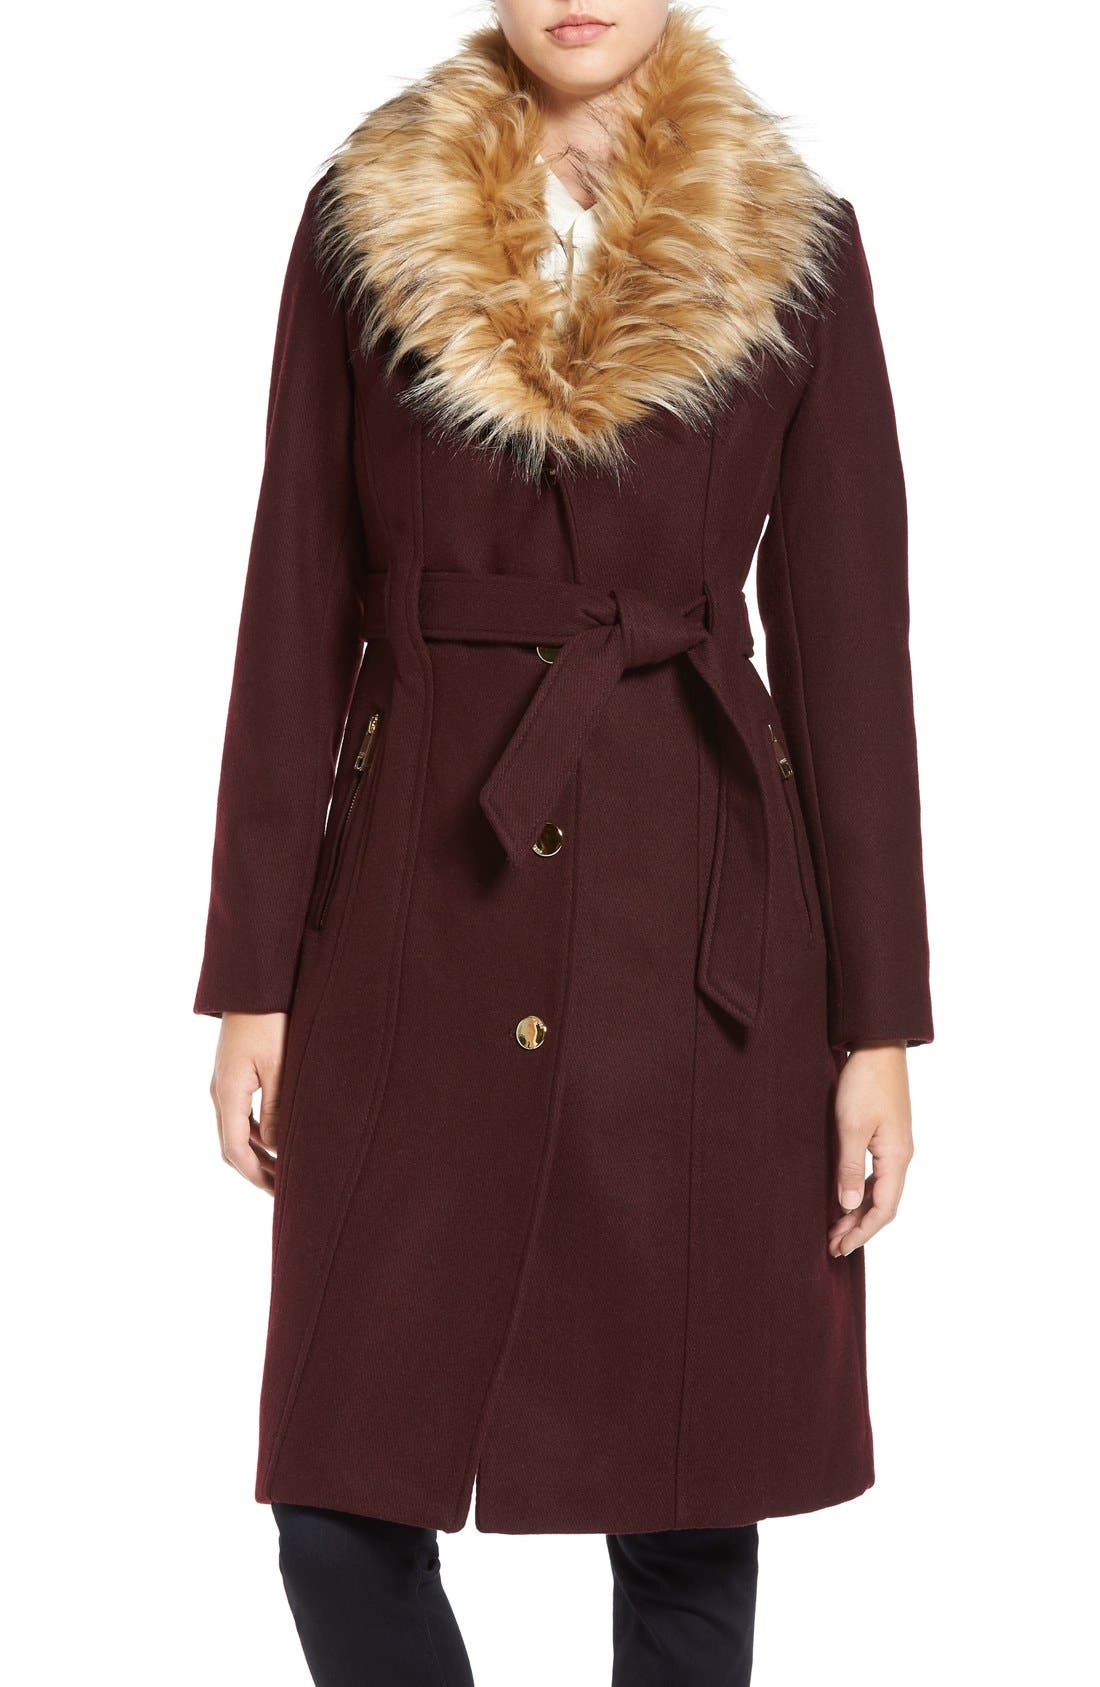 Alternate Image 1 Selected - GUESS Trench Coat with Faux Fur Trim